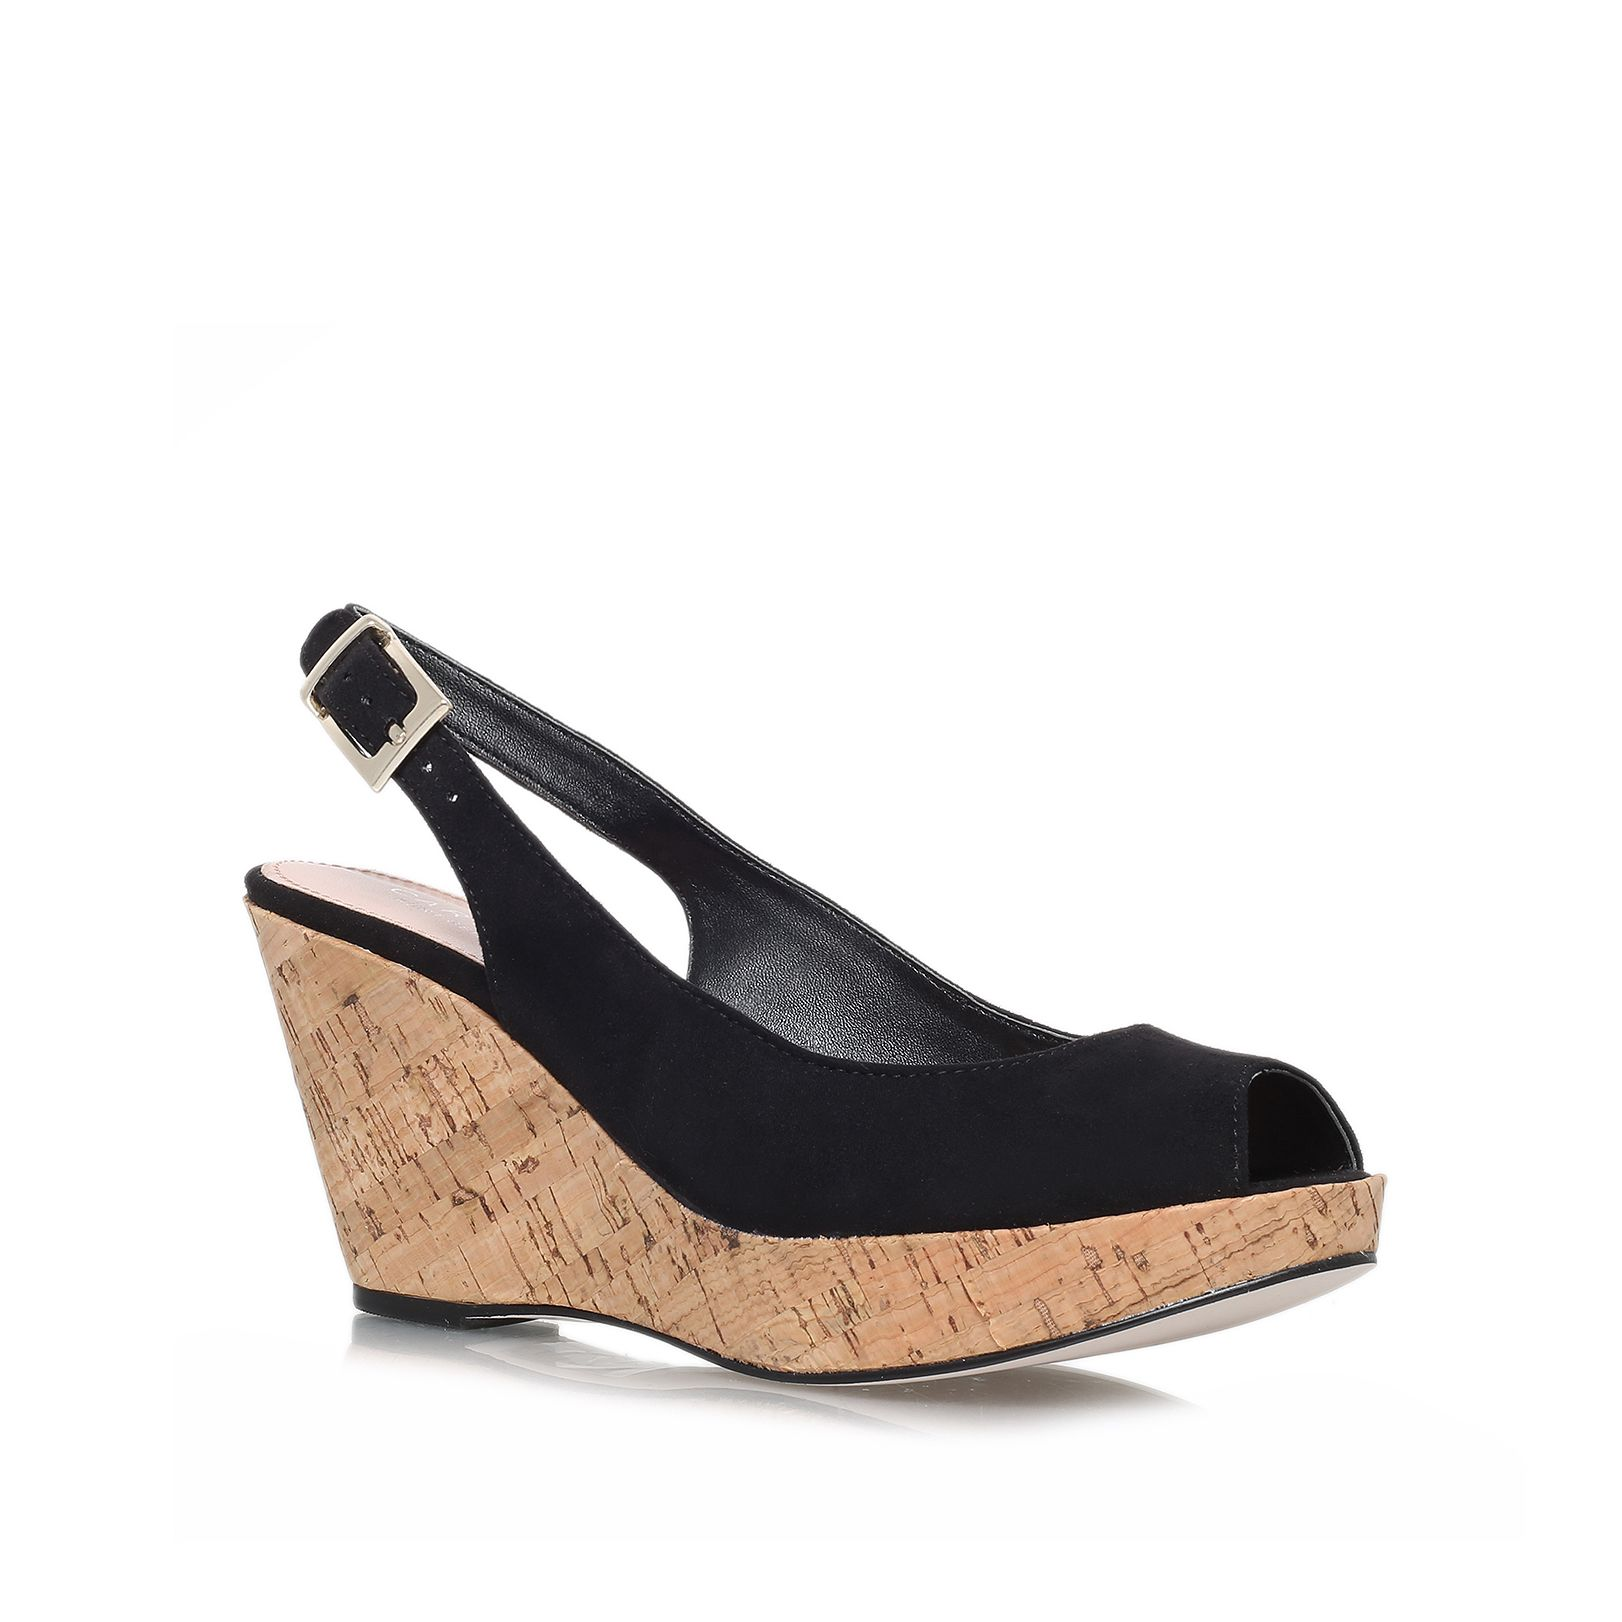 Klix high heel wedge sandals